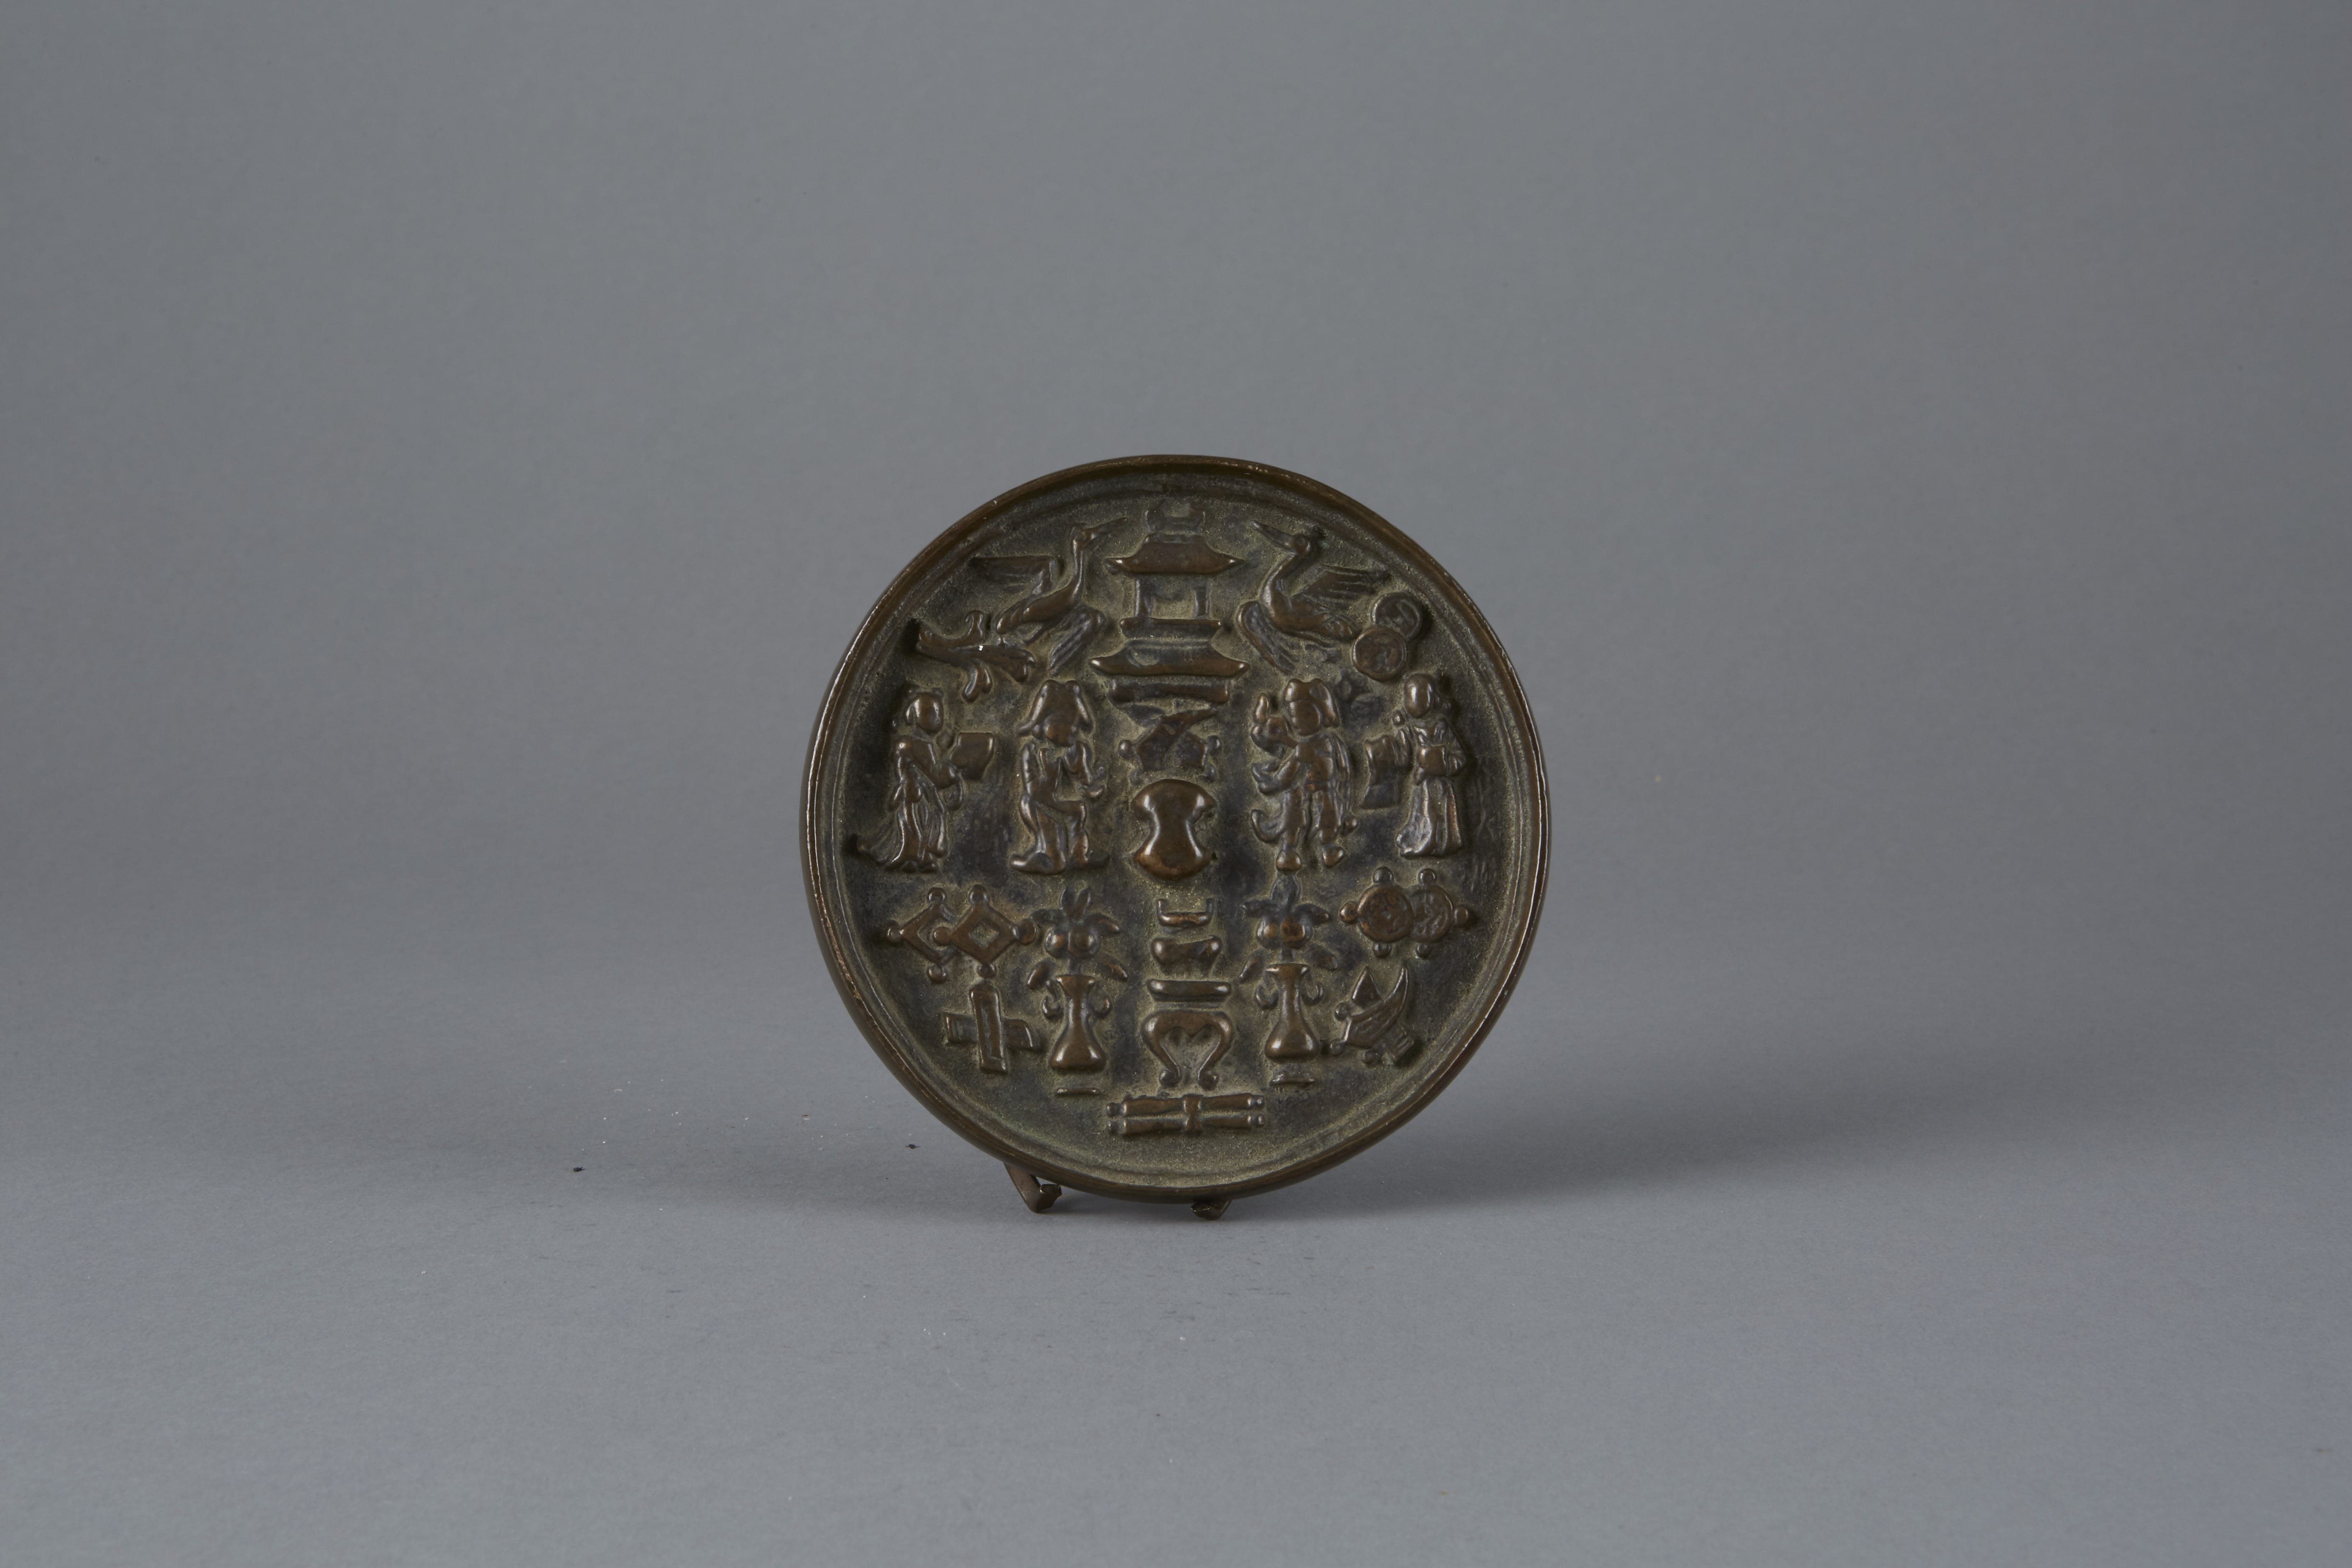 Lot 004: Chinese Ming Period Bronze Mirror with Buddhist symbols